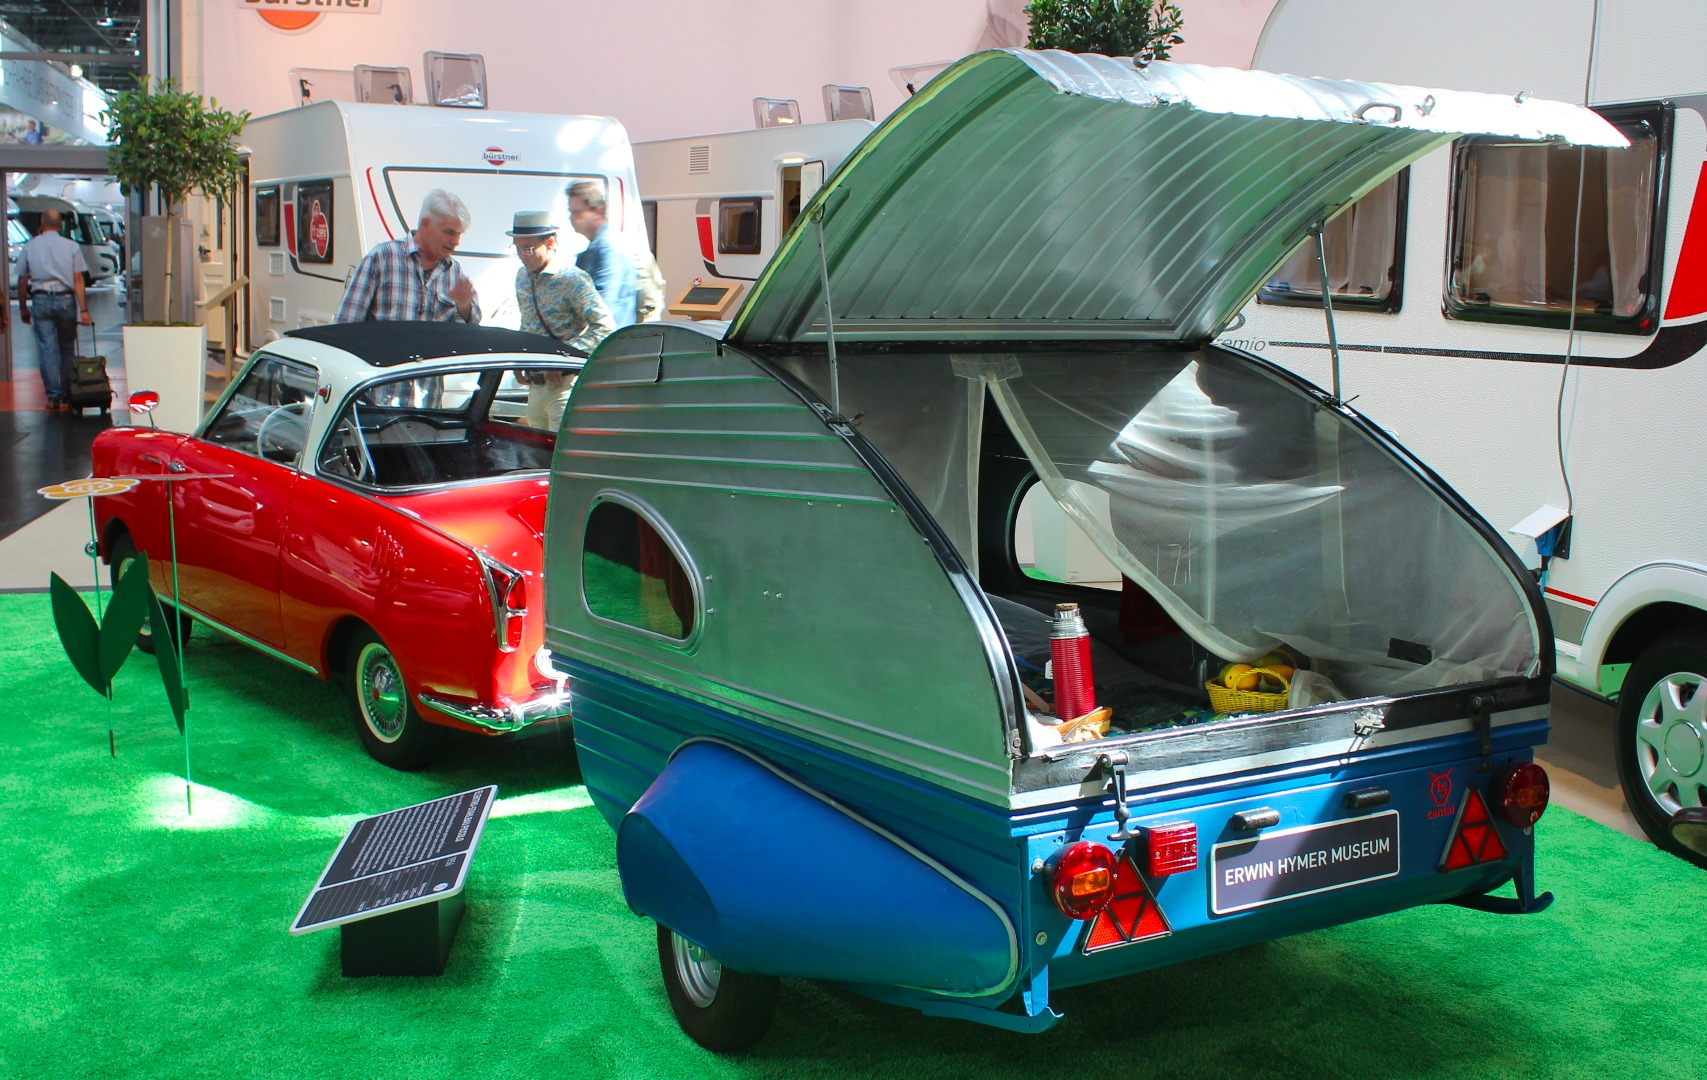 In photos: Awesome teardrops and small trailers from the 2018 Caravan Salon